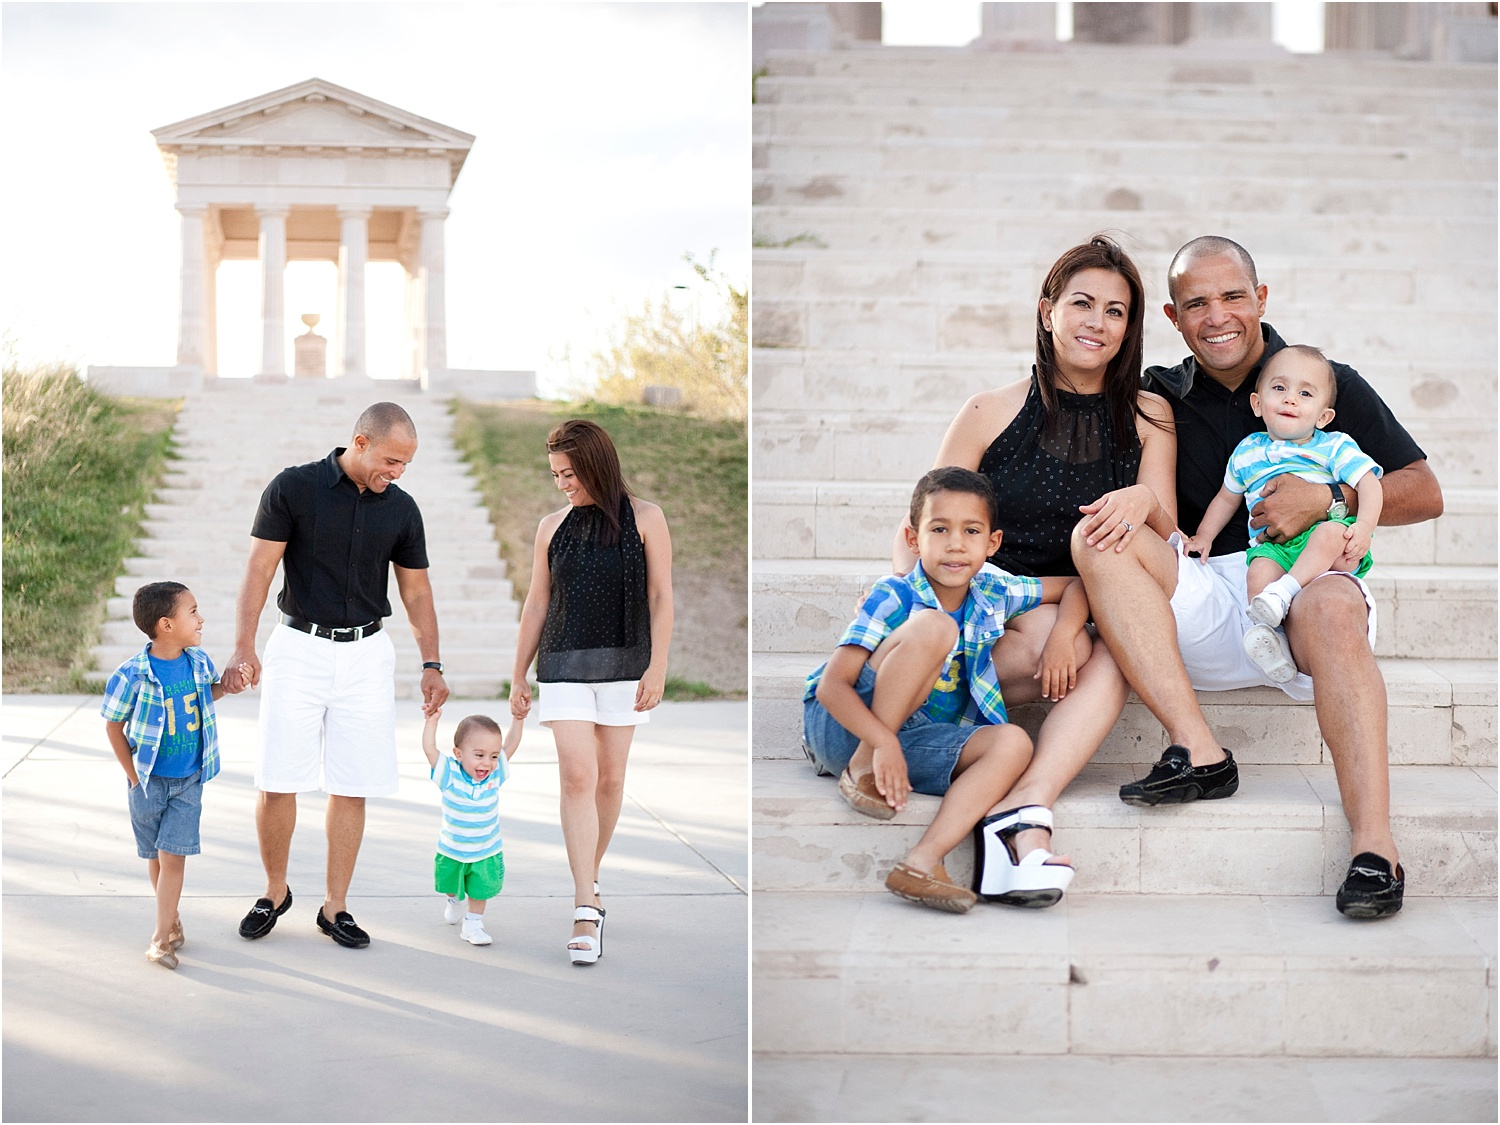 10 - Photographing Mini-Sessions